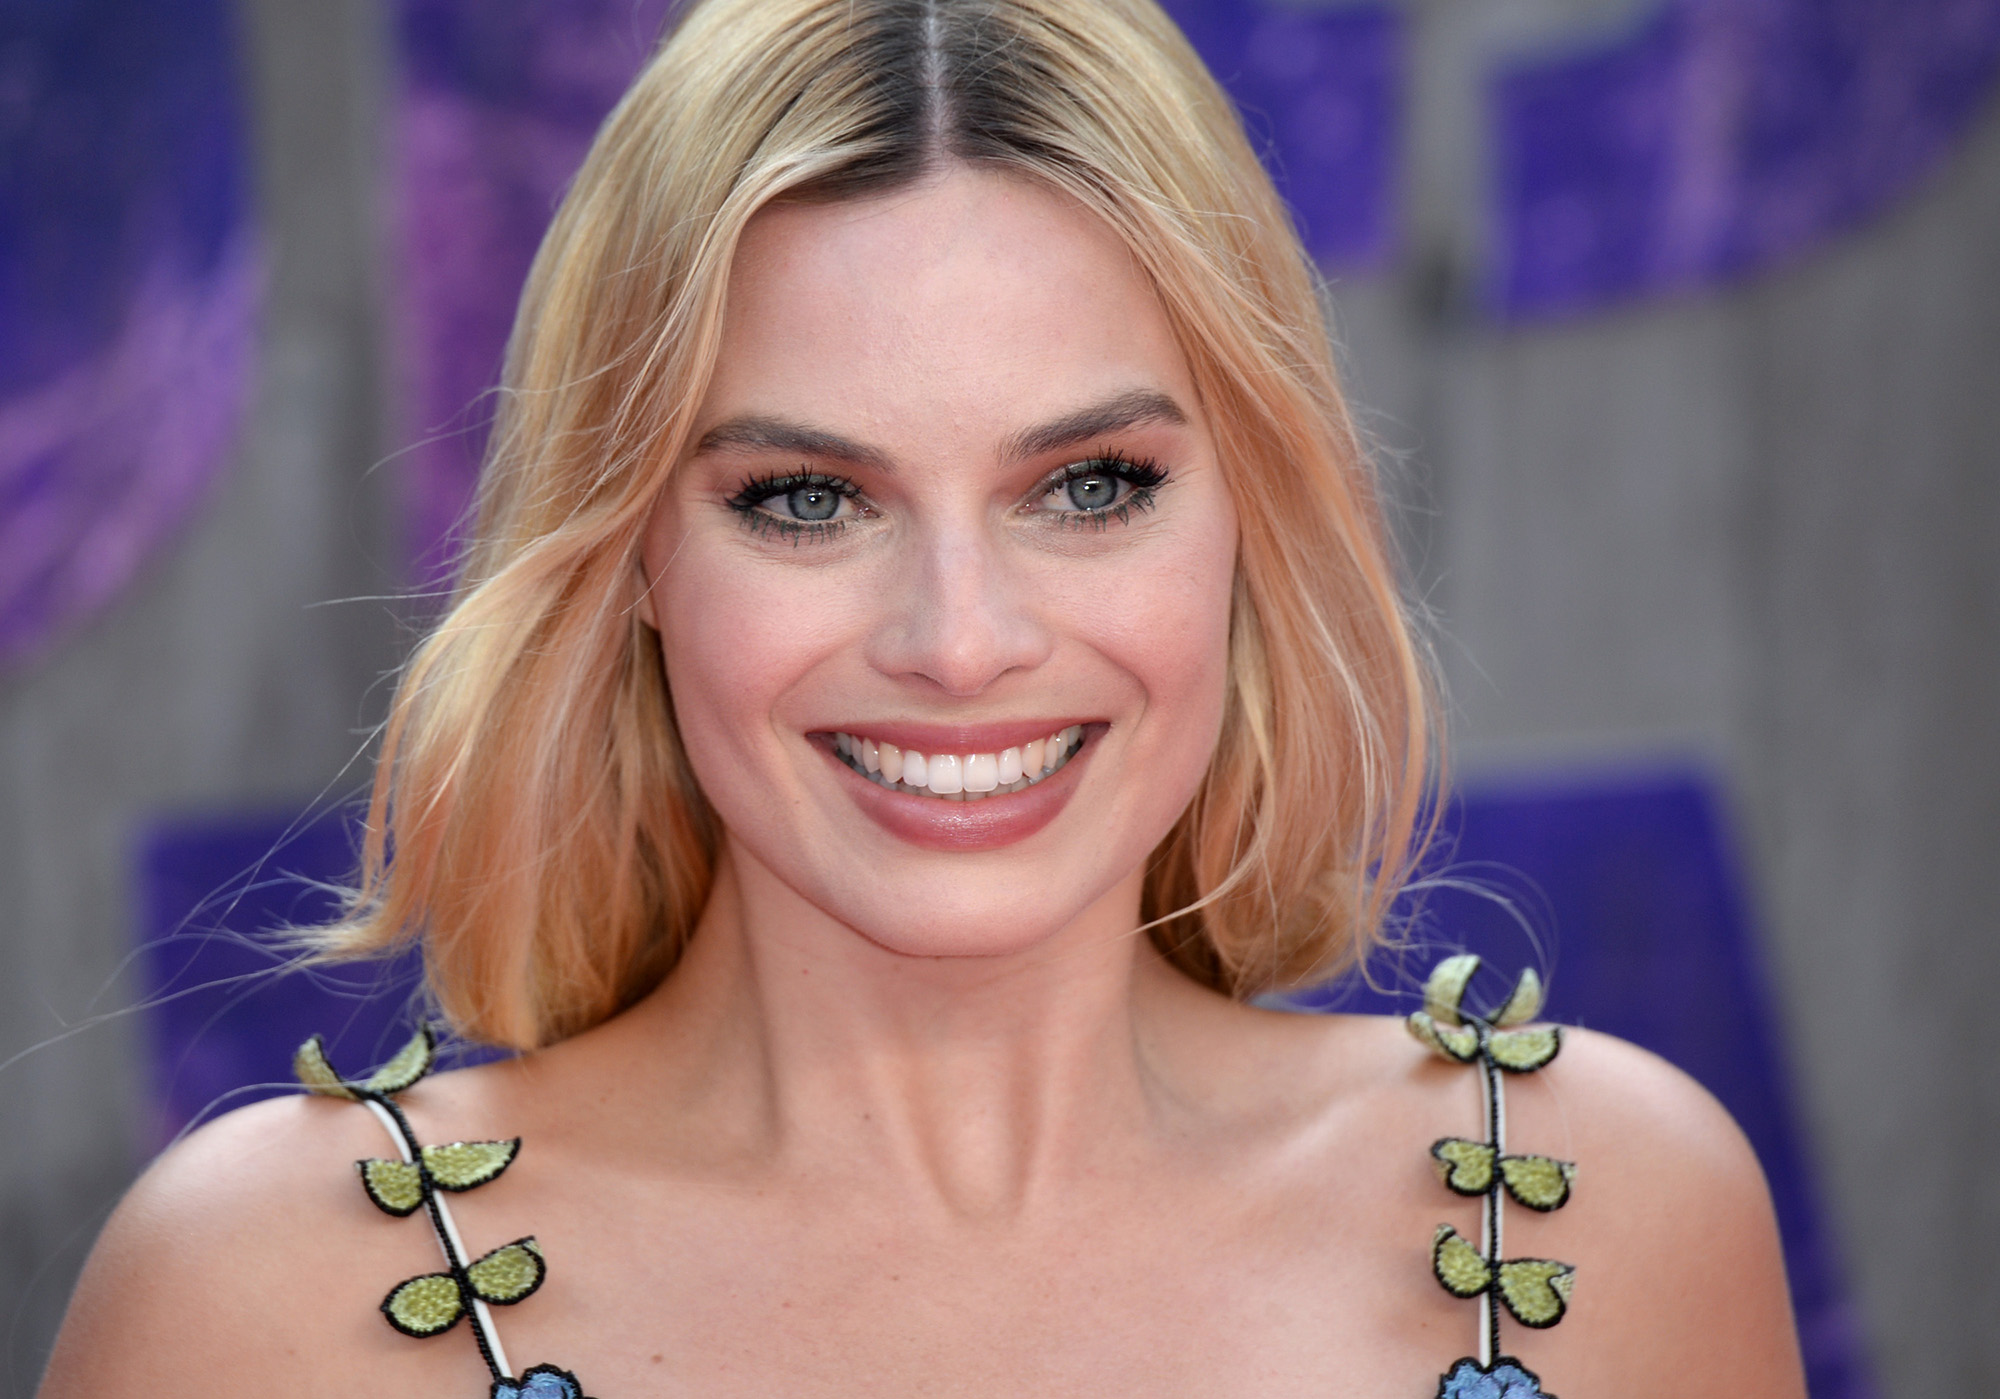 Margot Robbie attends the European Premiere of  Suicide Squad  at Odeon Leicester Square on August 3, 2016 in London, England.  (Photo by Anthony Harvey/Getty Images)